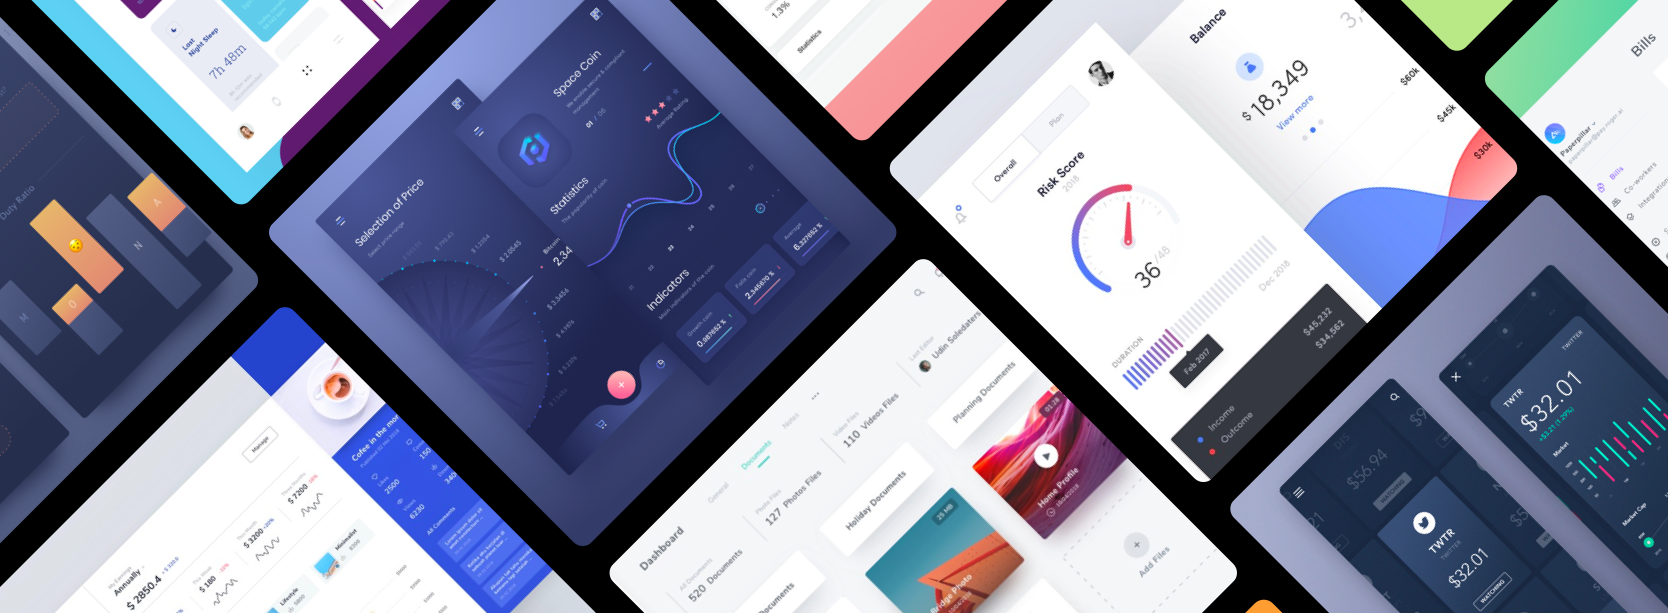 Dashboards Inspiration 2018 Via Muzli Design Inspiration By Muzli Muzli Design Inspiration